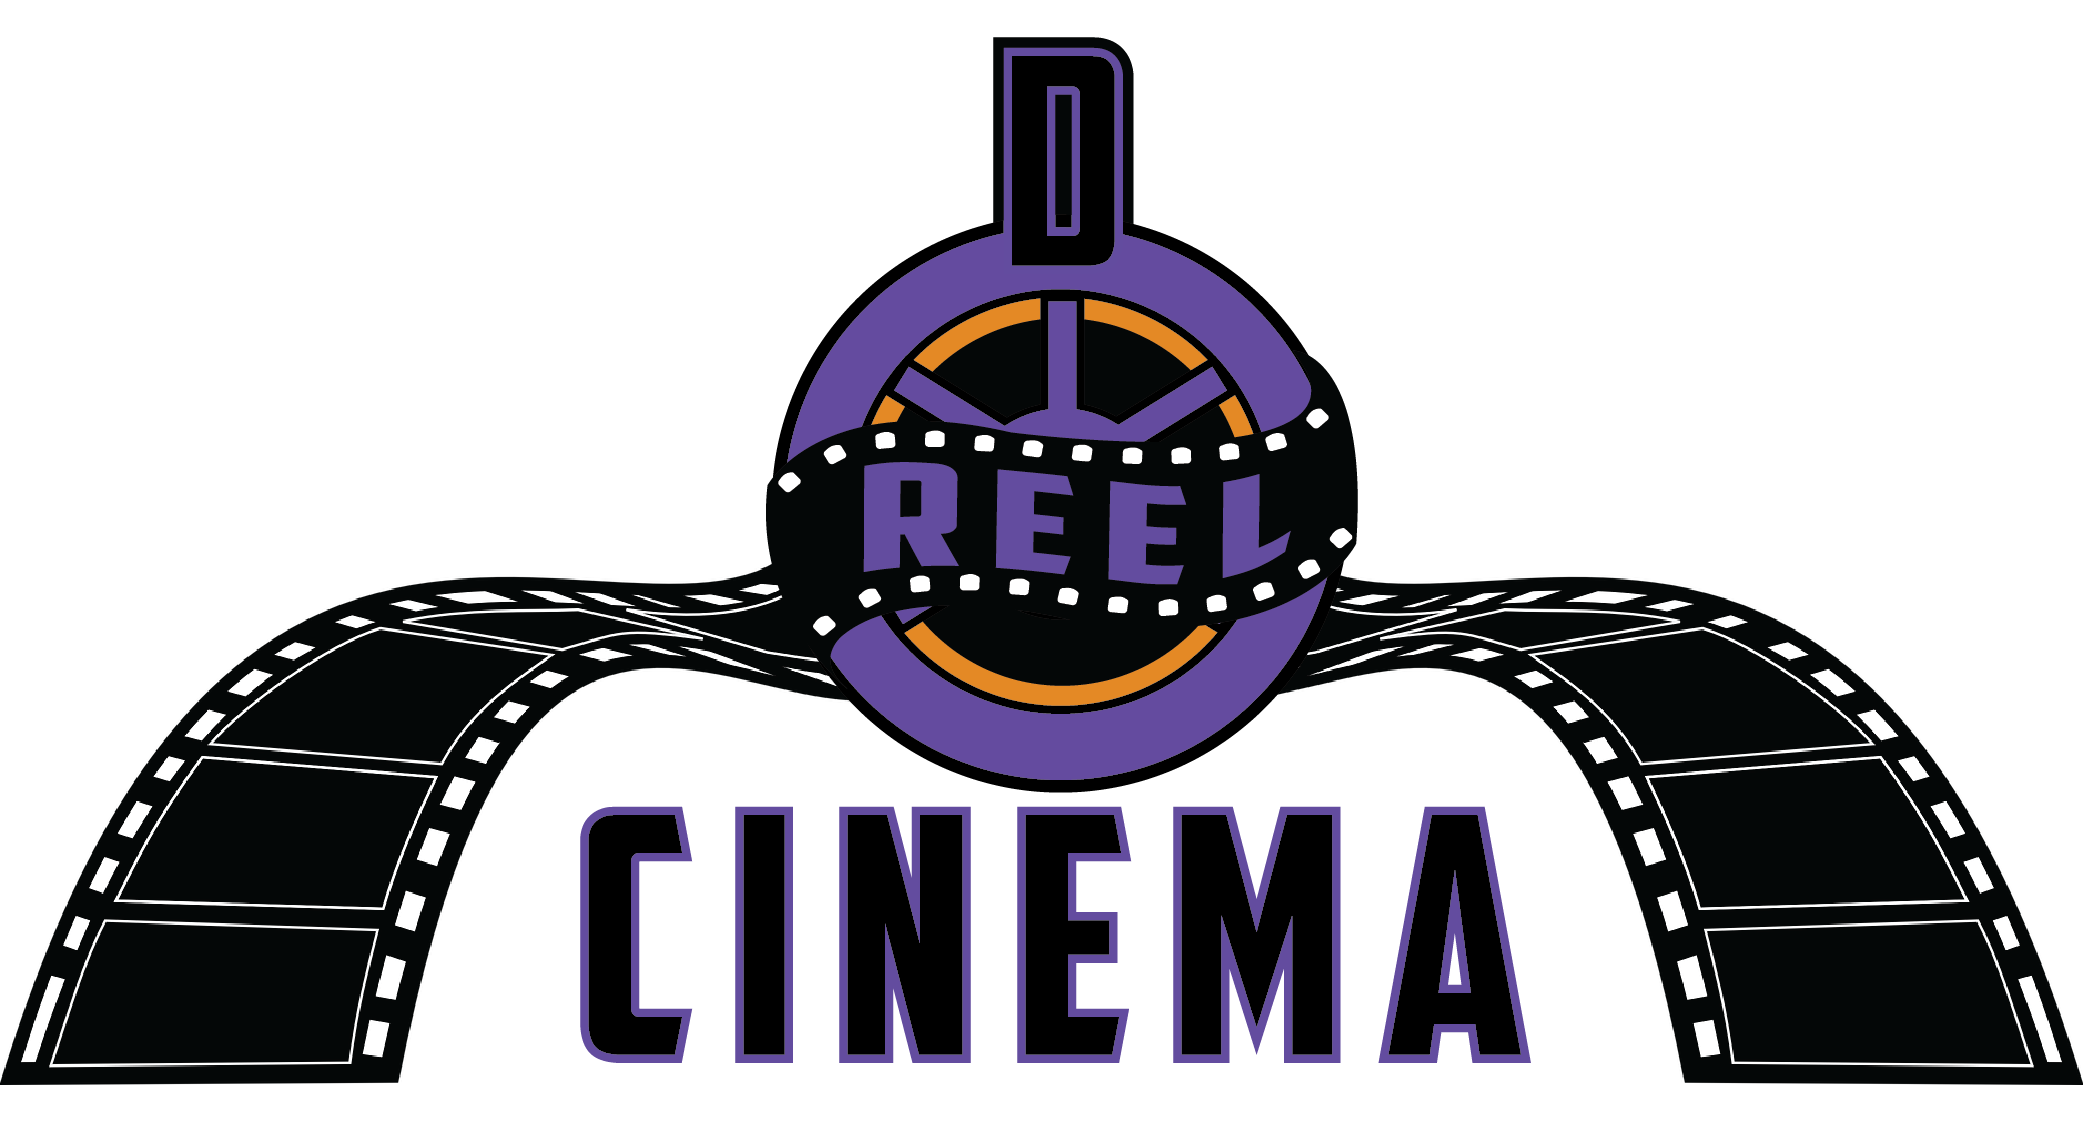 D Reel Cinema Logo